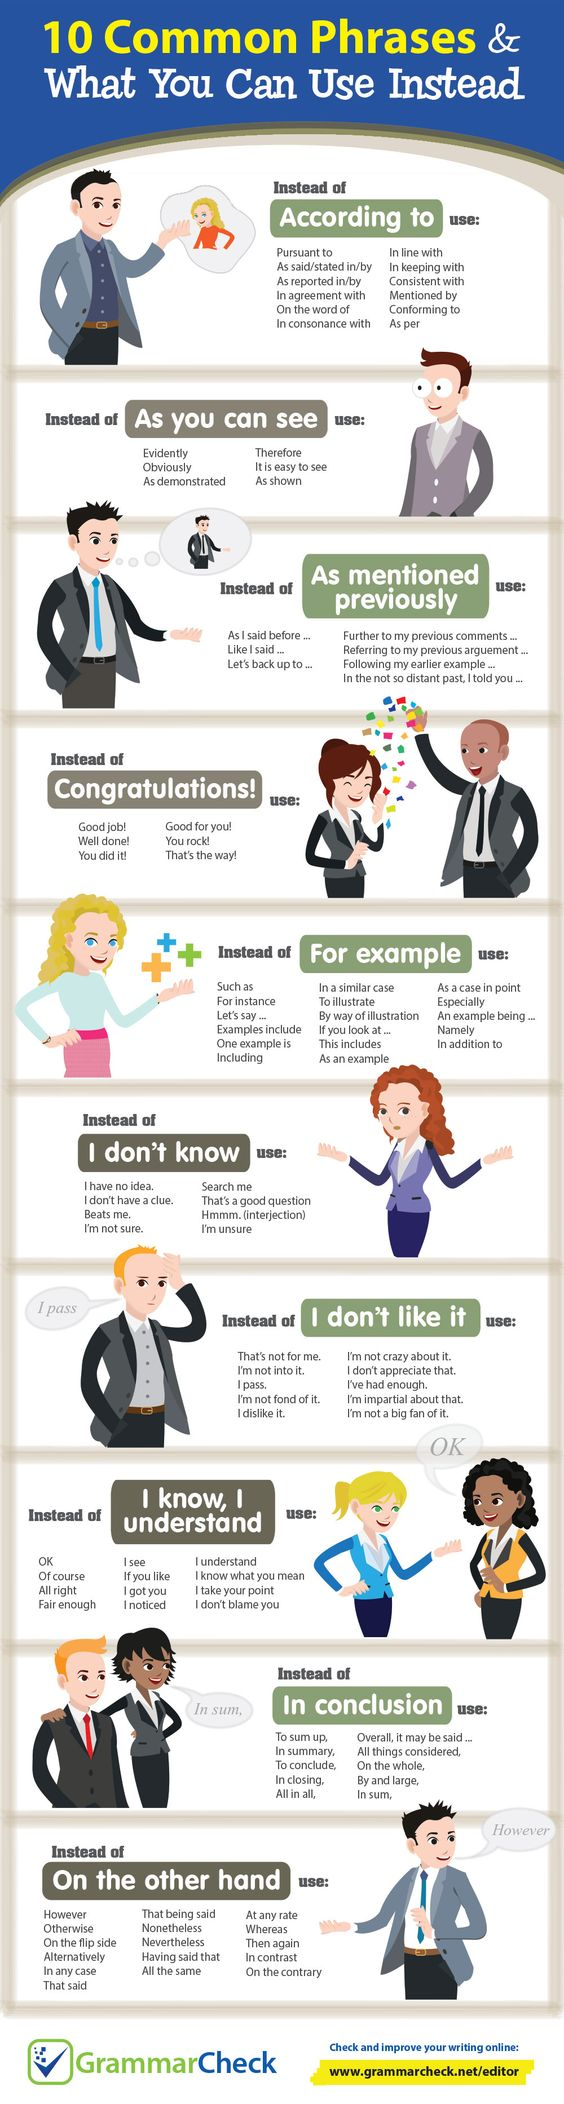 proofreading replace common phrases